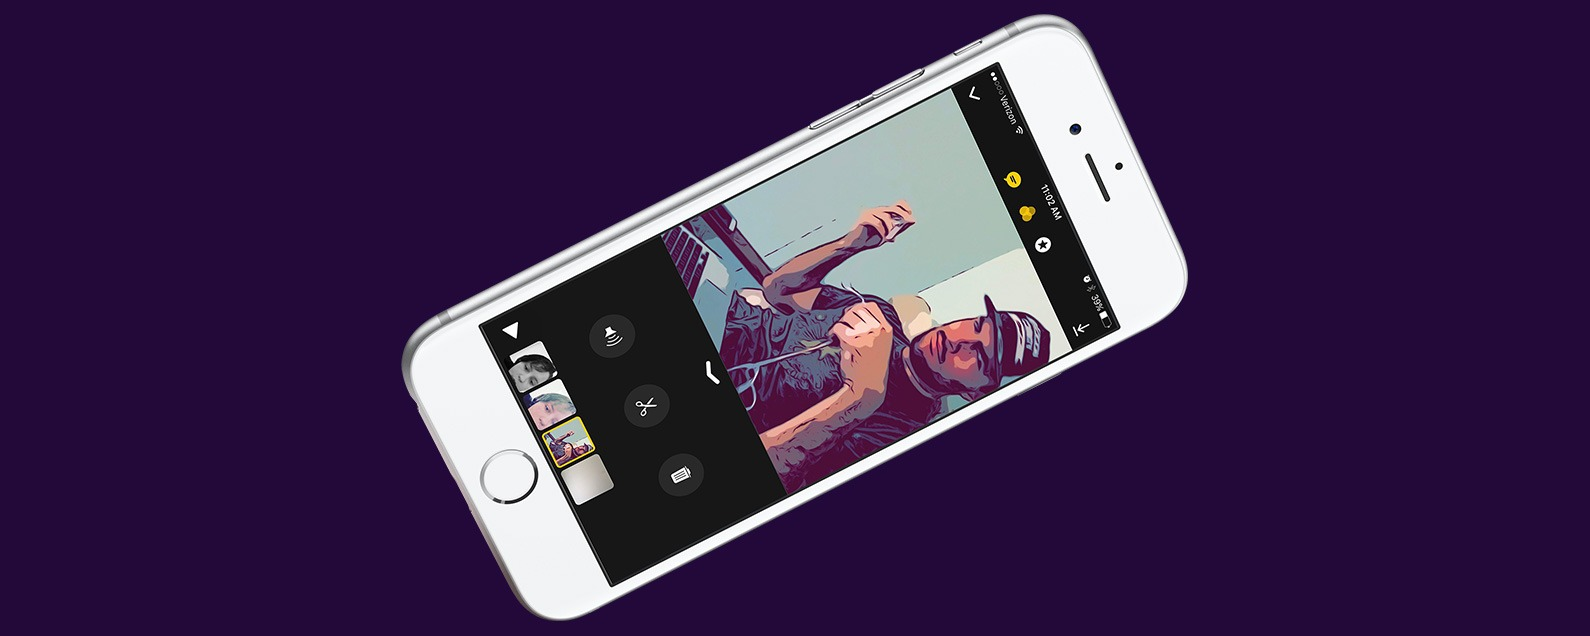 How to Create & Edit Videos with Apple's New Clips App | iPhoneLife com